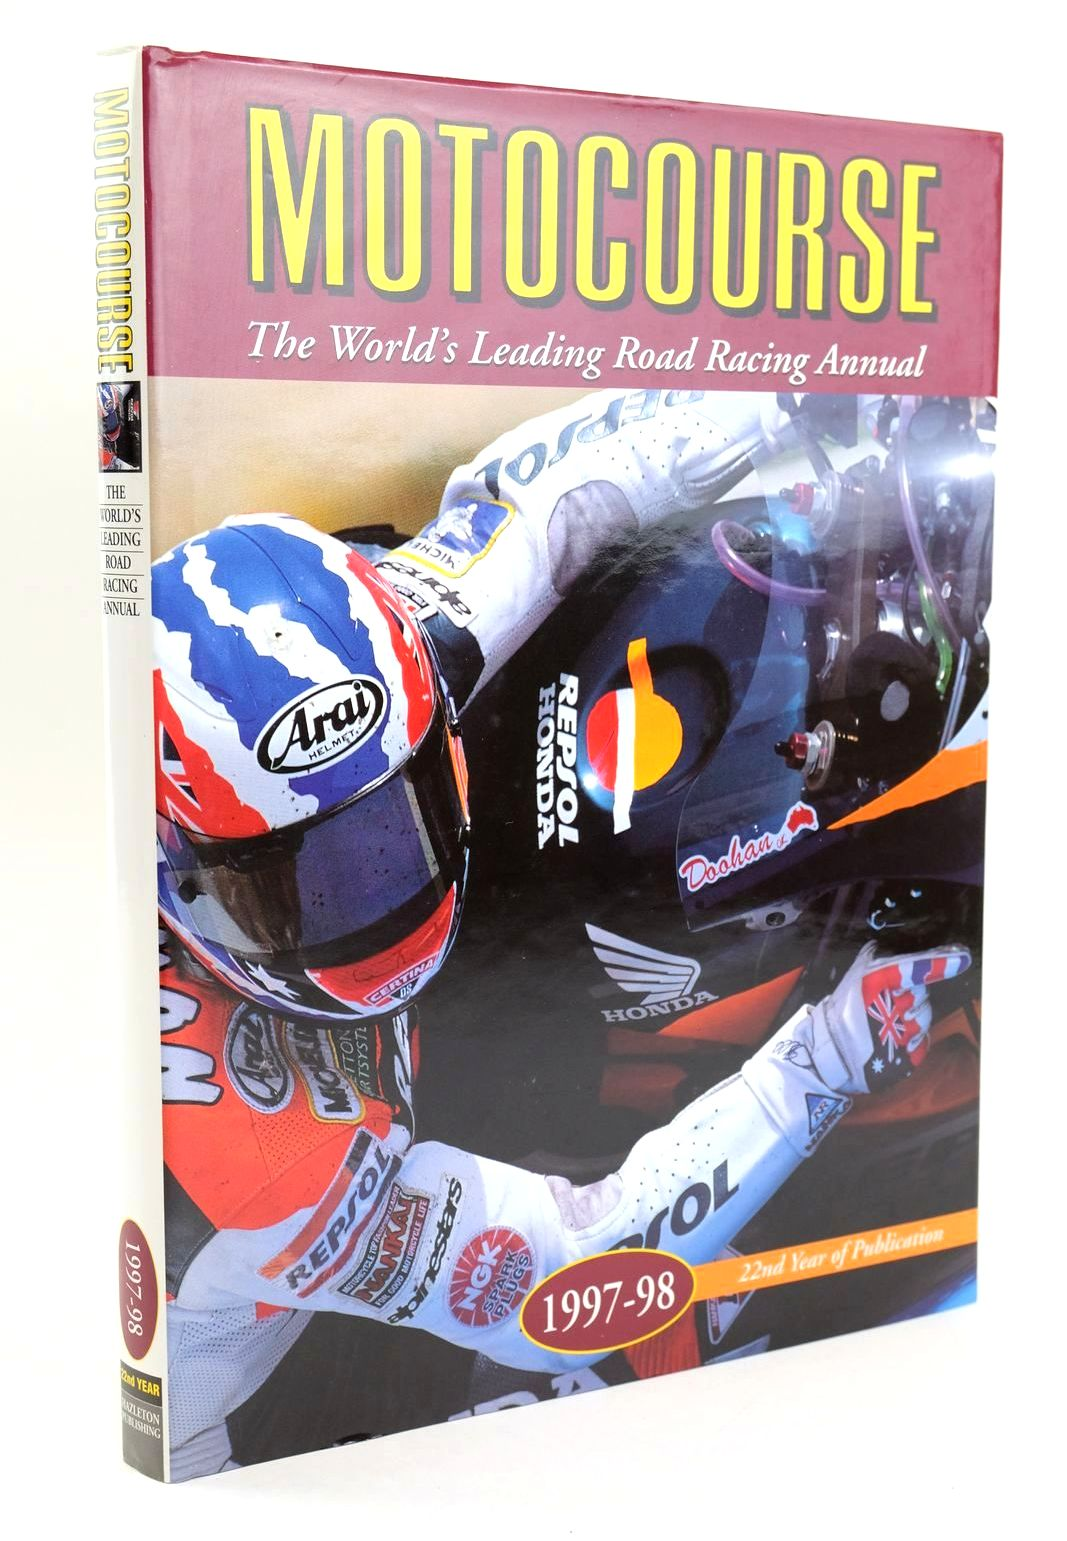 Photo of MOTOCOURSE 1997-98 published by Hazleton Publishing (STOCK CODE: 1319323)  for sale by Stella & Rose's Books